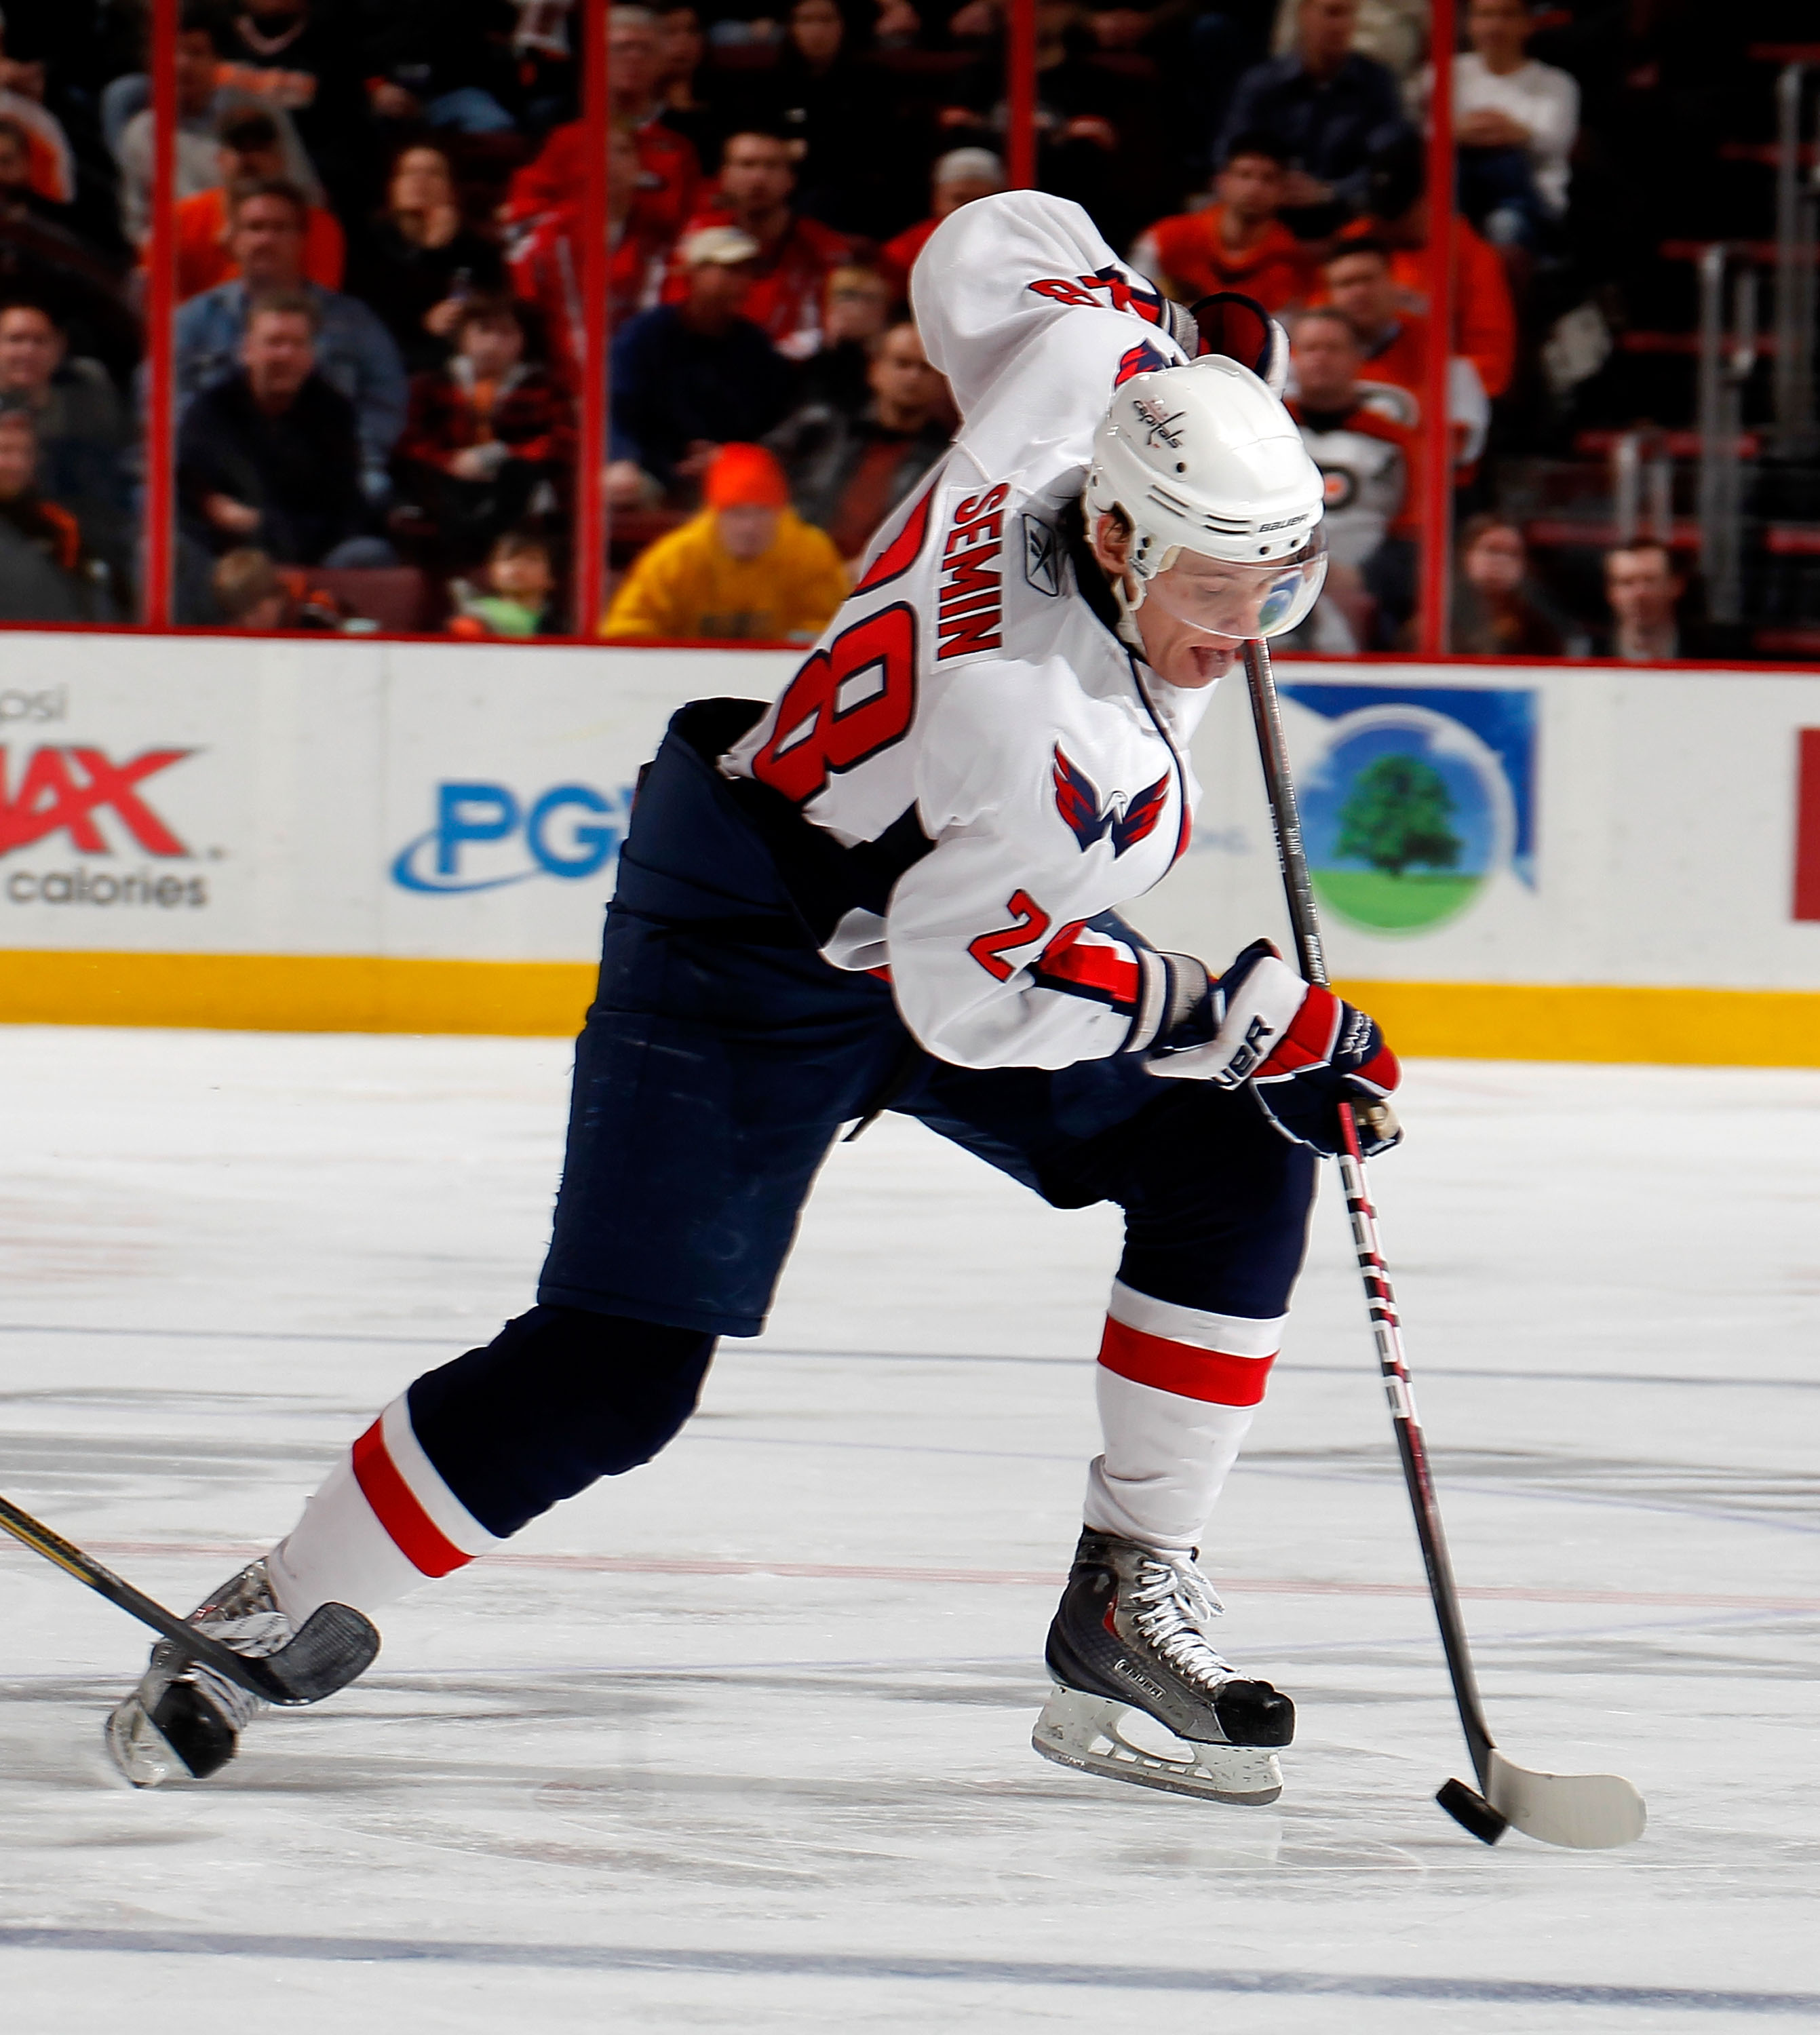 PHILADELPHIA, PA - MARCH 22:  Alexander Semin #28 of the Washington Capitals skates during an NHL hockey game against the Philadelphia Flyers at the Wells Fargo Center on March 22, 2011 in Philadelphia, Pennsylvania.  (Photo by Paul Bereswill/Getty Images